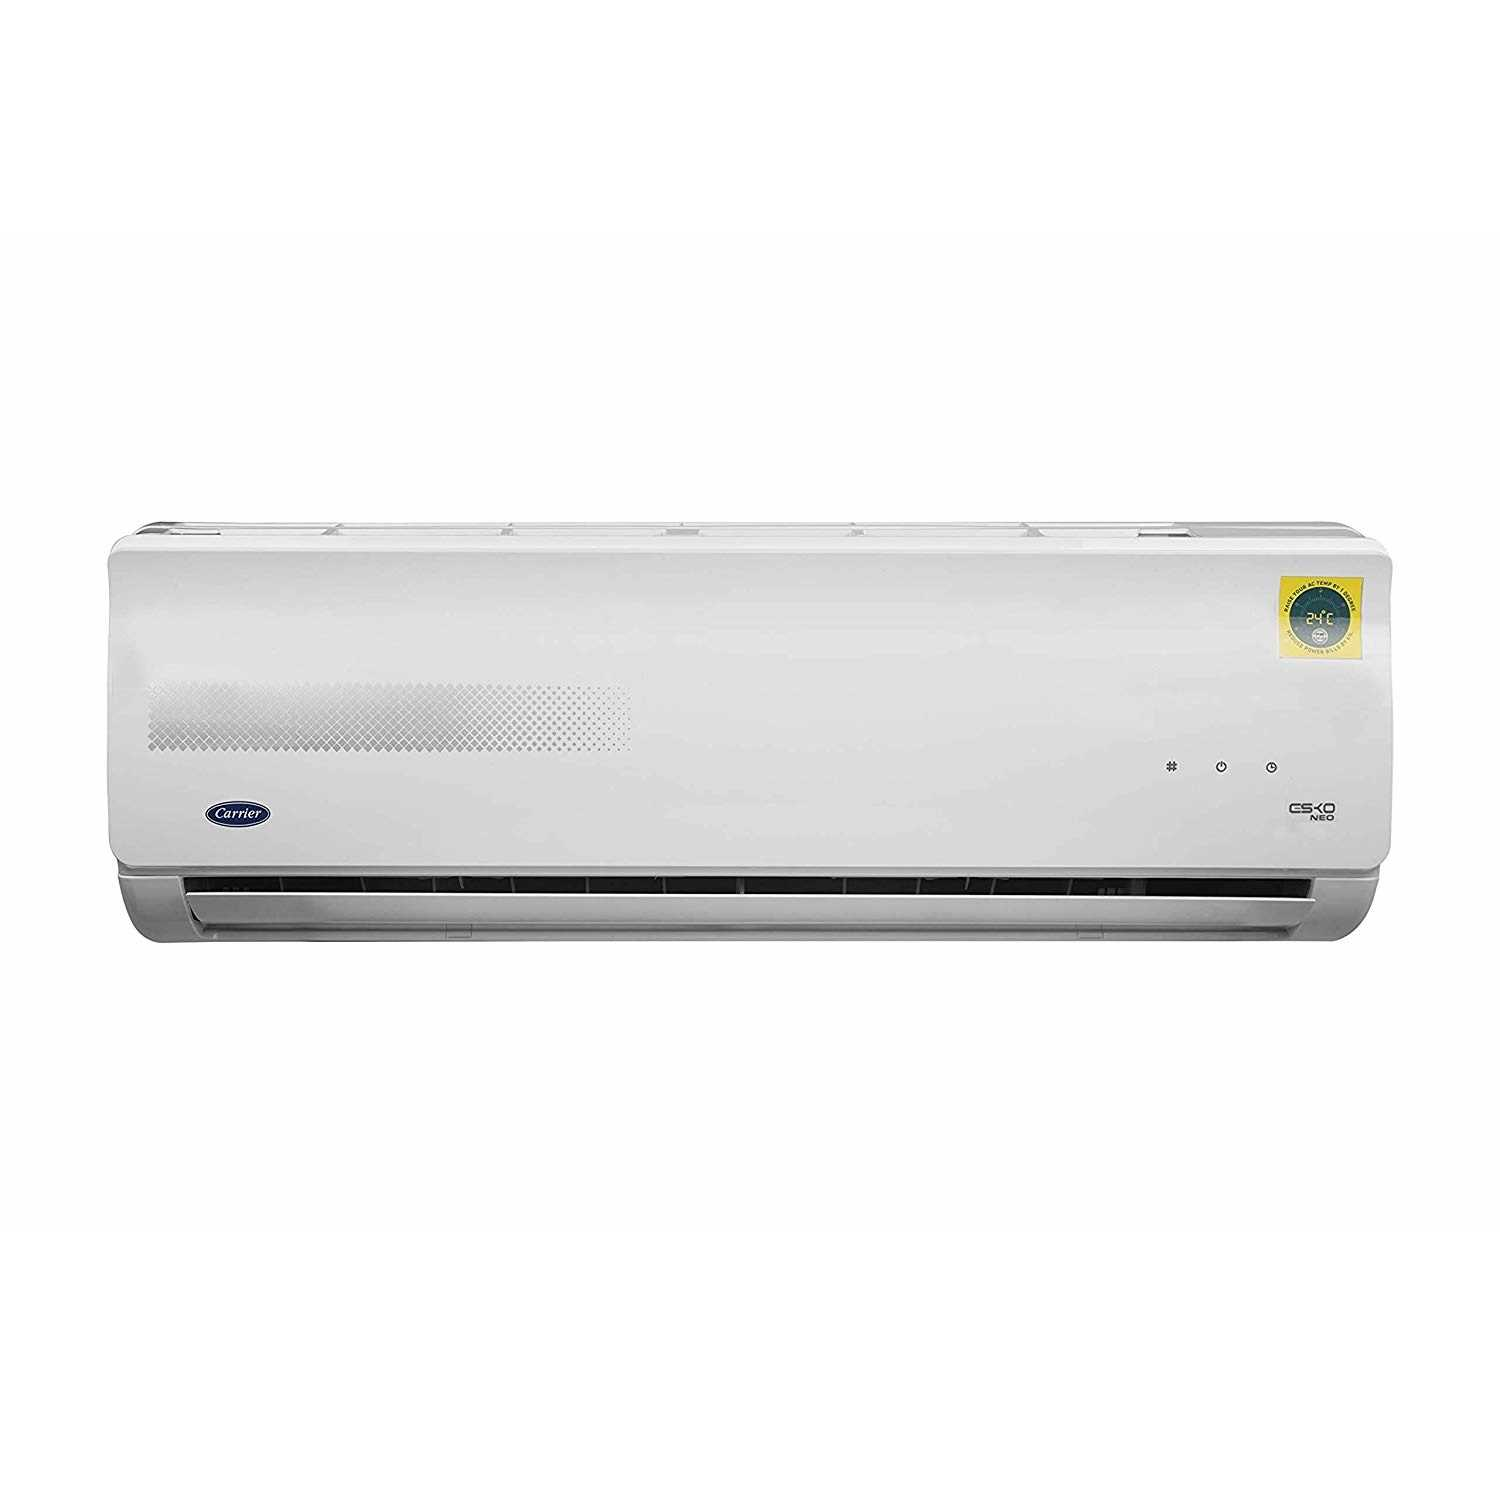 Carrier 24K Esko Neo 2 Ton 3 Star Split AC